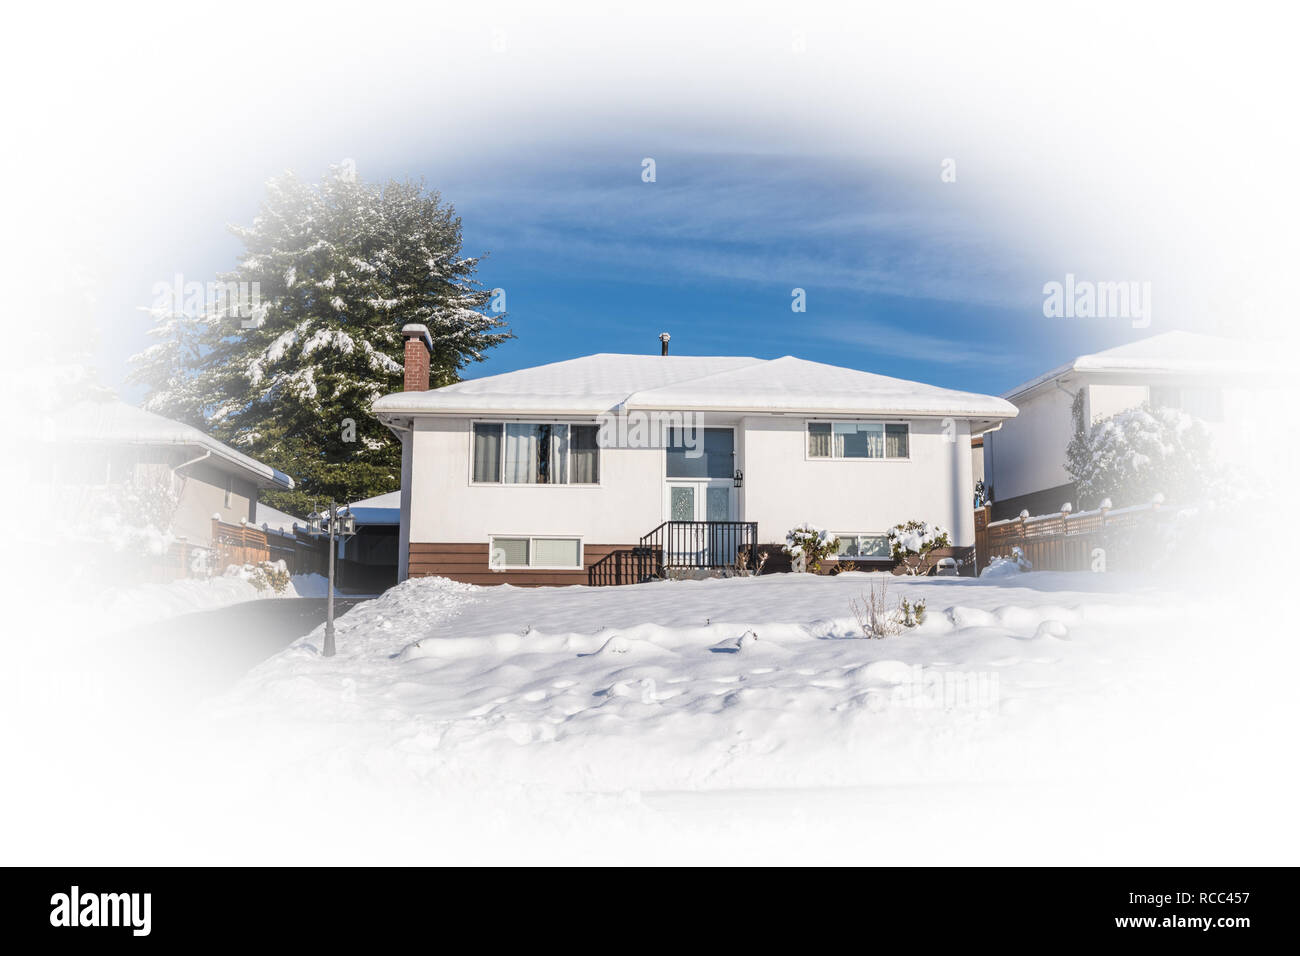 Old modest residential house in snow on sunny winter day - Stock Image